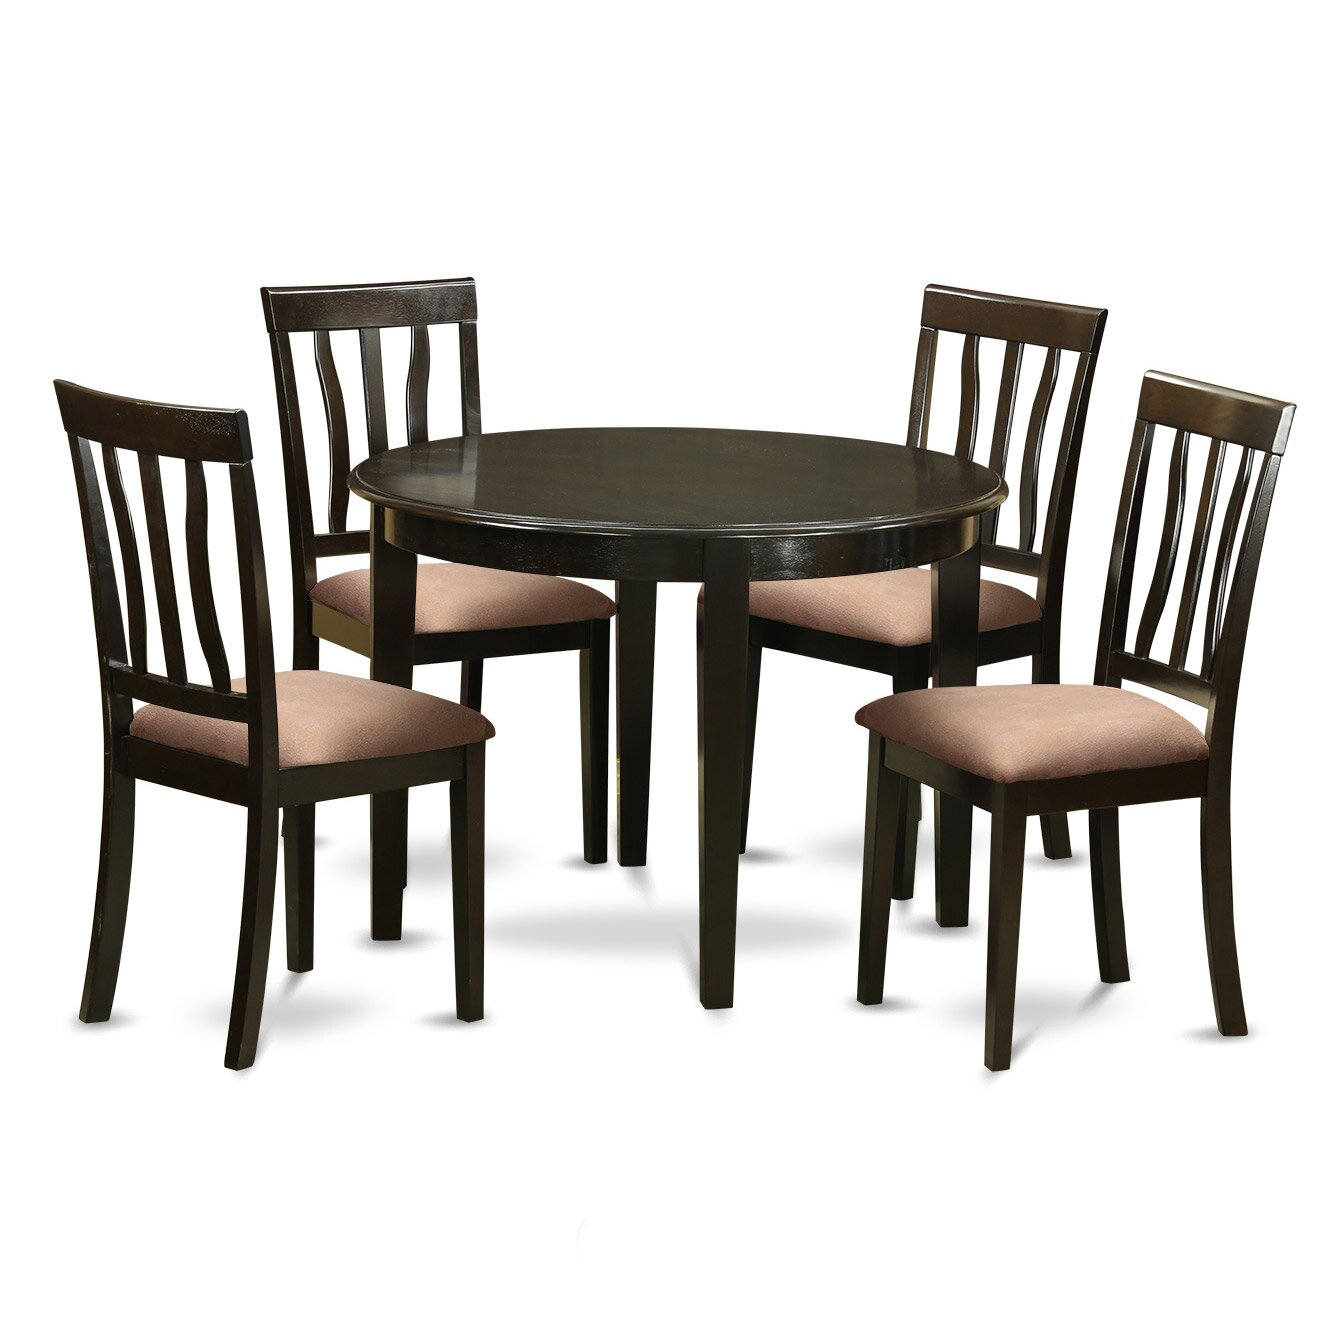 Kitchen Table And Chairs Sets: Boston 5 Piece Dining Set